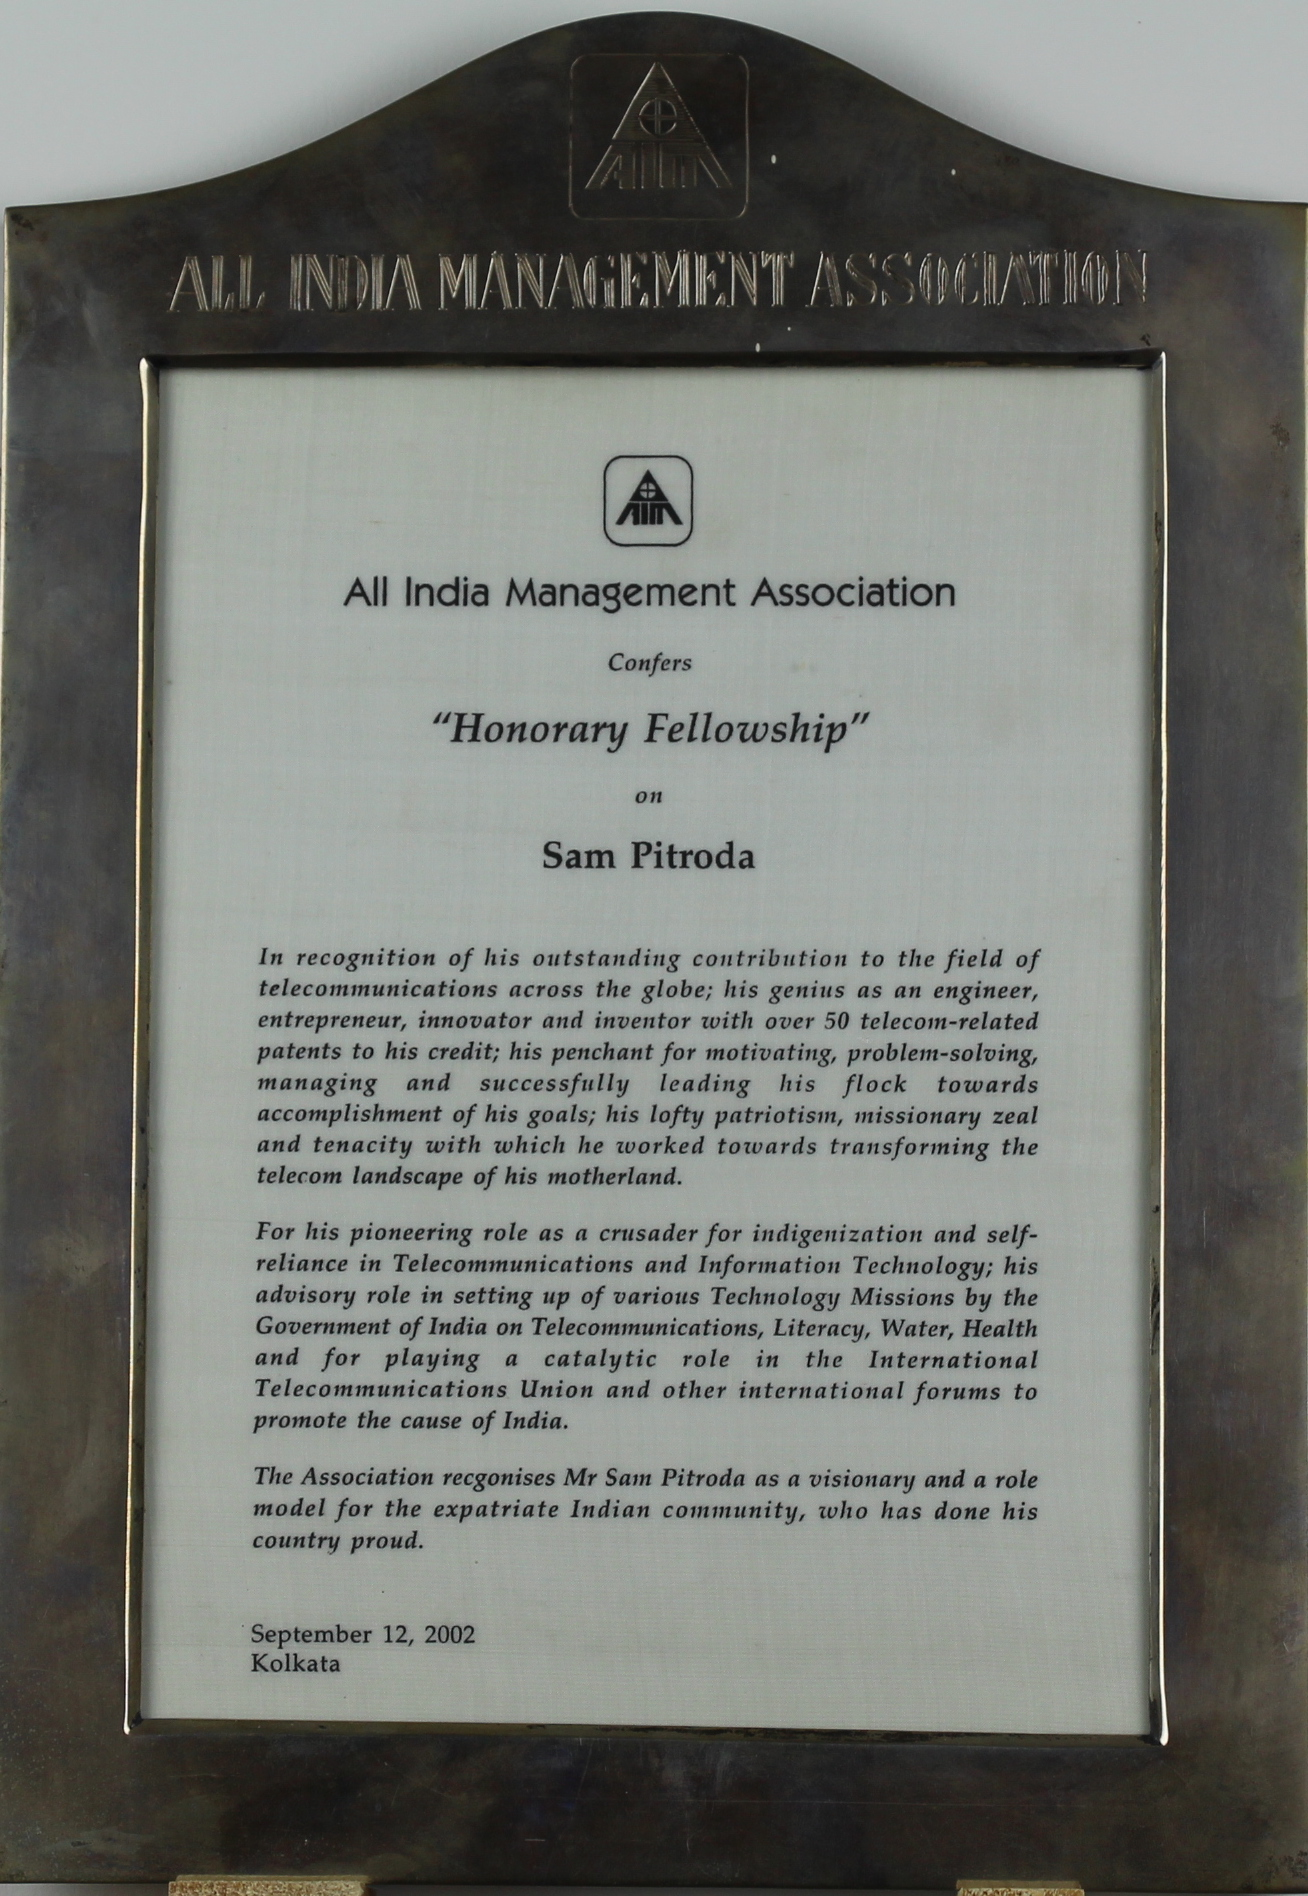 Honorary Fellowship Award, All India Management Association, 2002